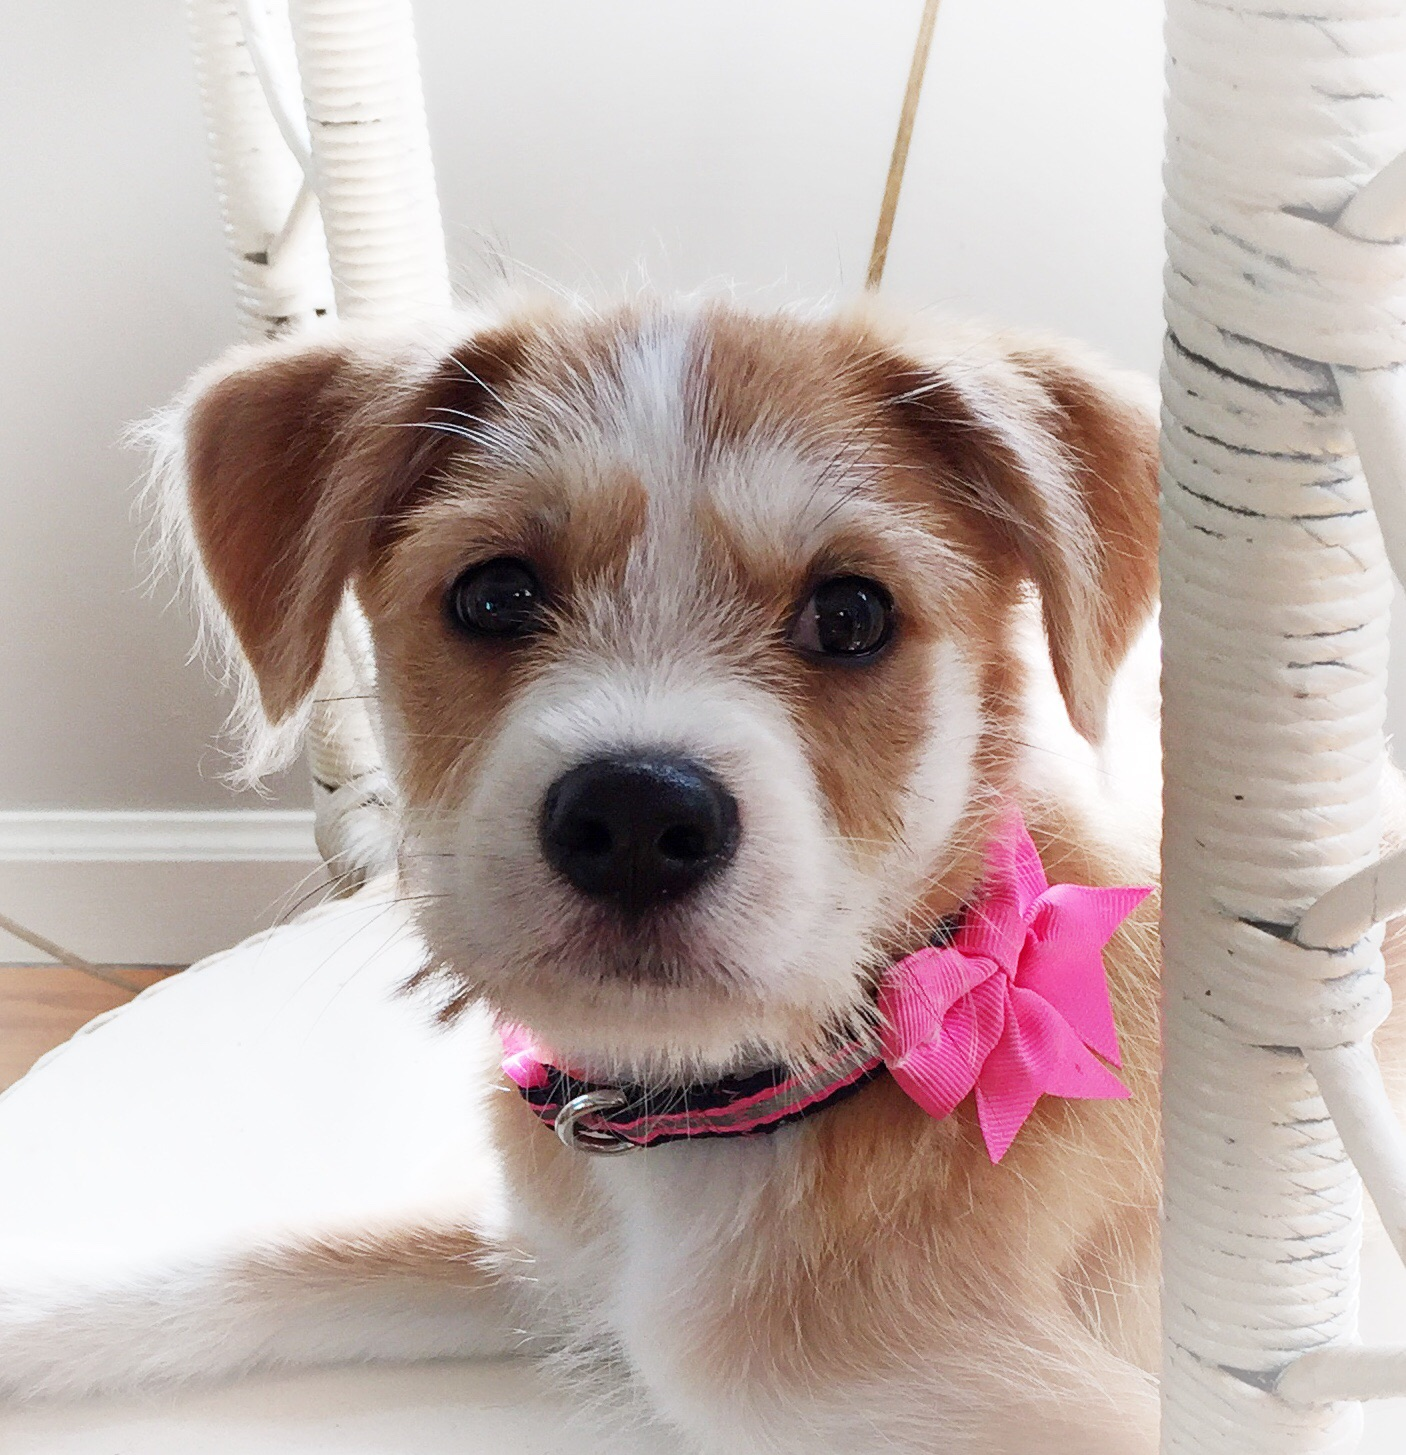 Daisy, our new rescue puppy.